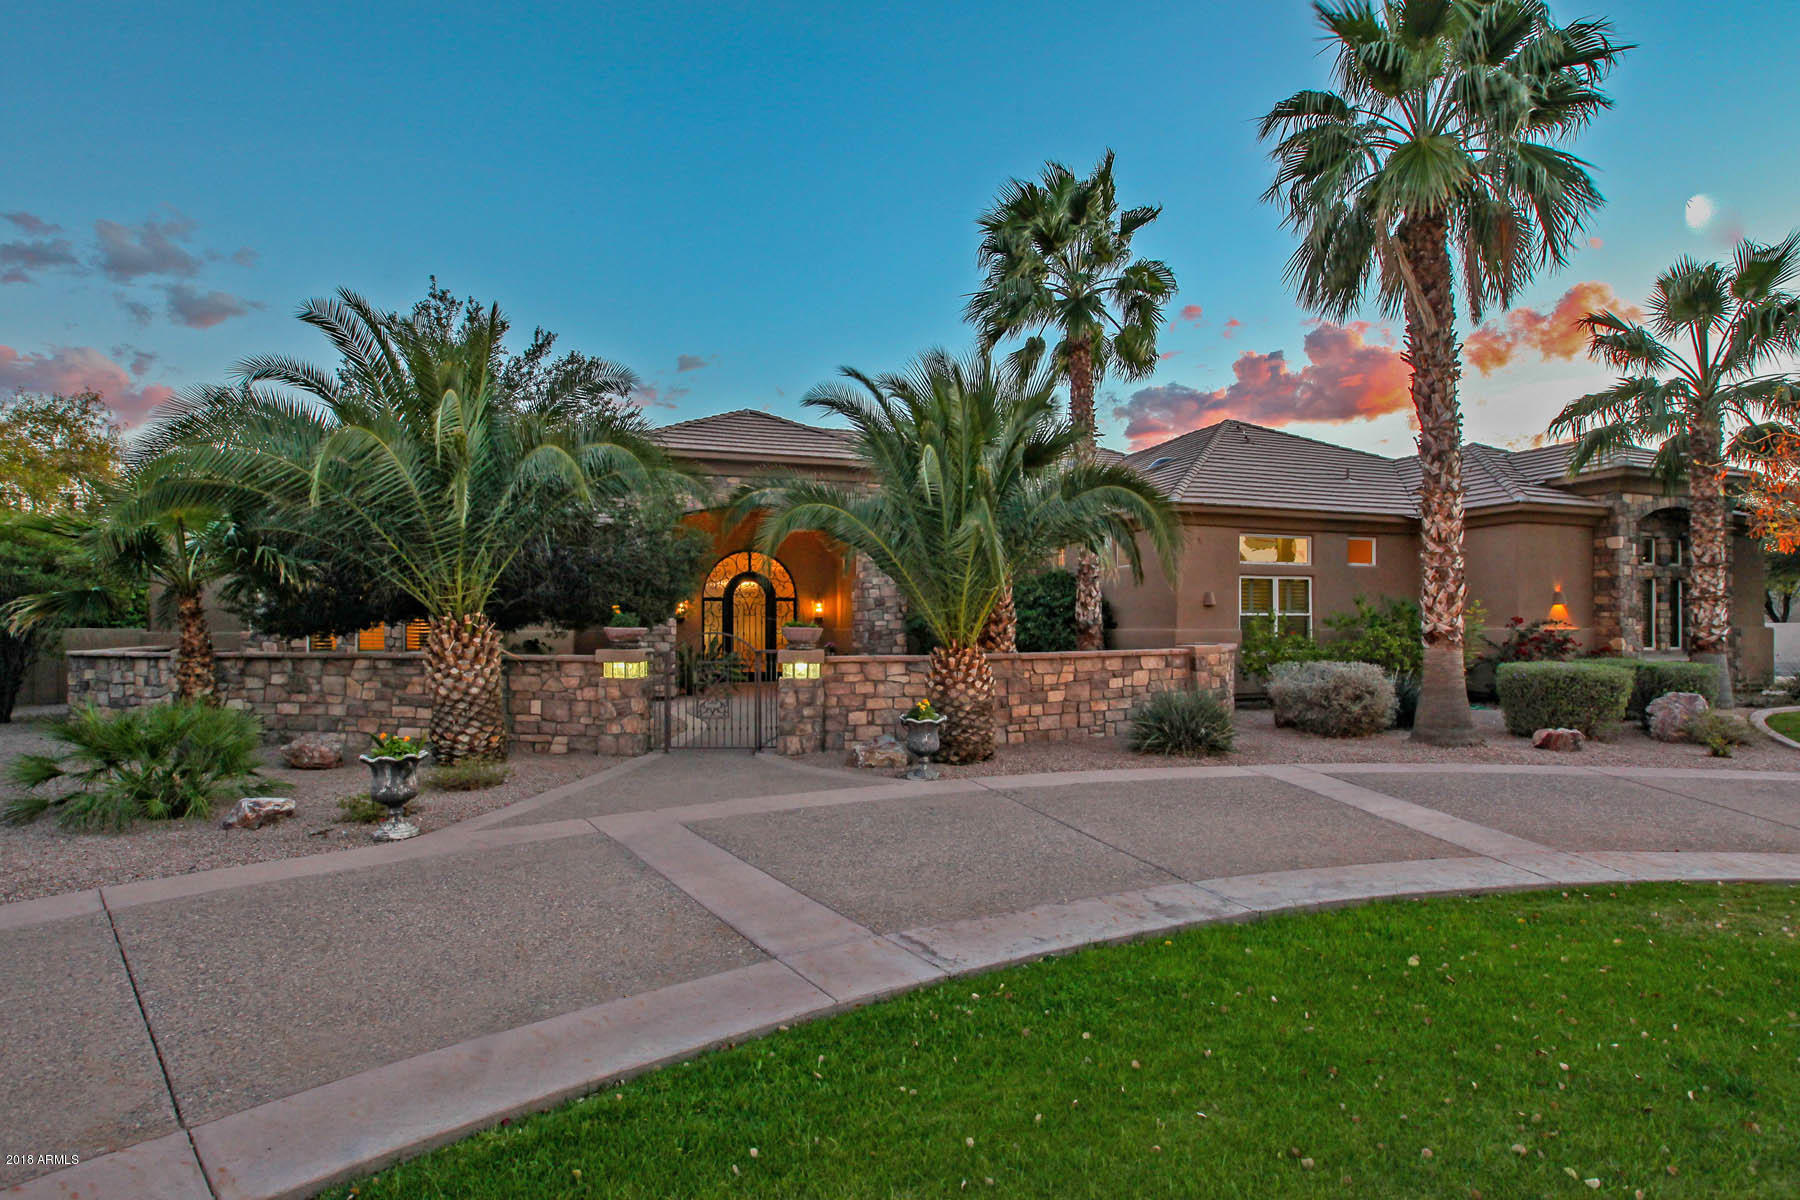 MLS 5740863 2653 E Scorpio Place, Chandler, AZ 85249 4 Bedrooms